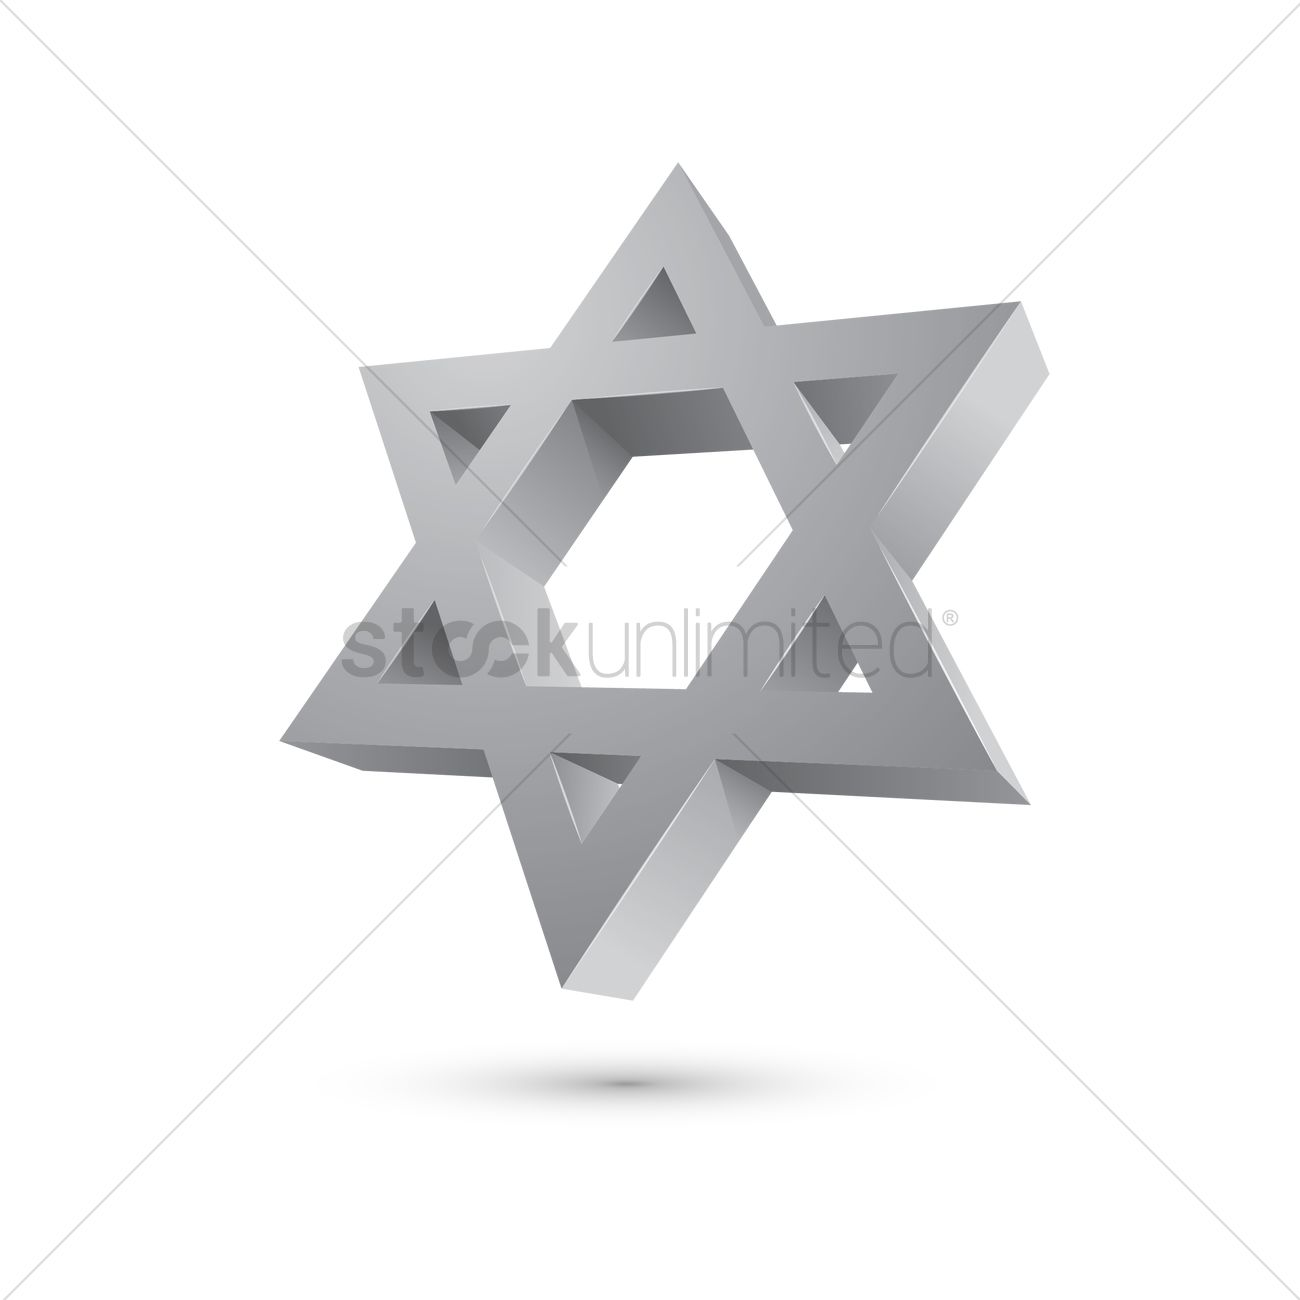 Symbol Of Judaism Vector Image 1996931 Stockunlimited